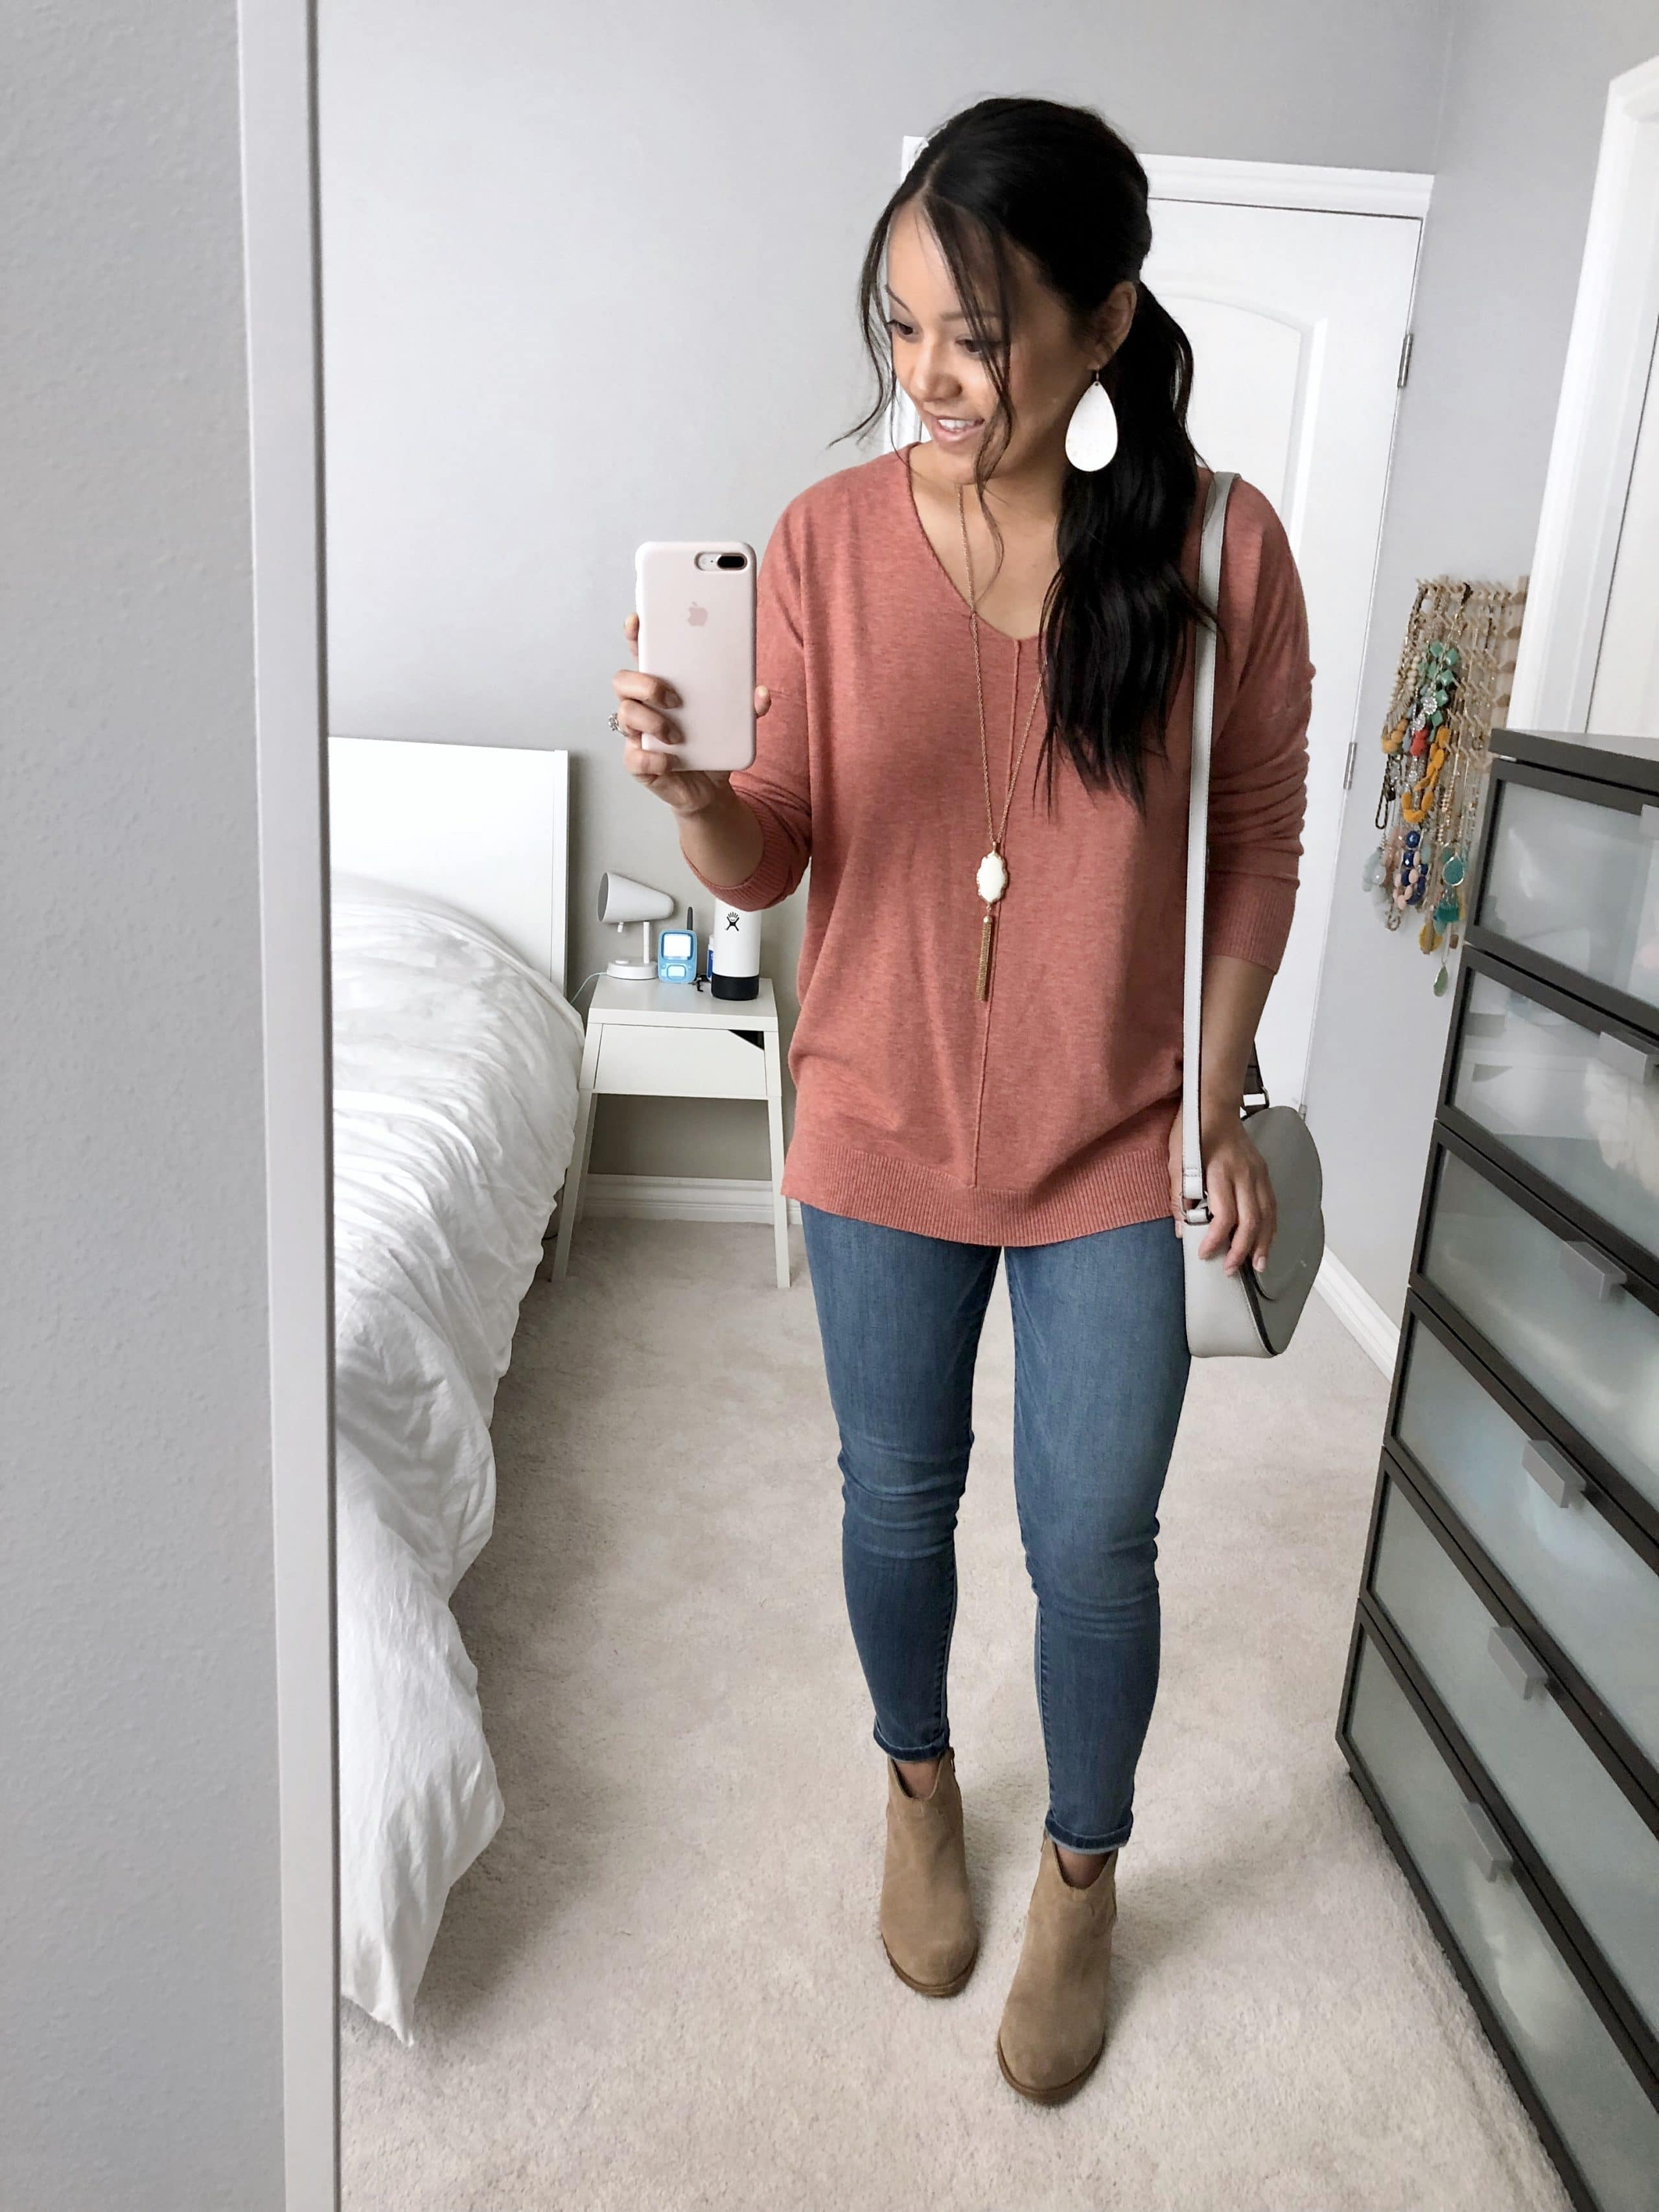 Pink Sweater + Light jeans + Taupe Booties + White Accessories